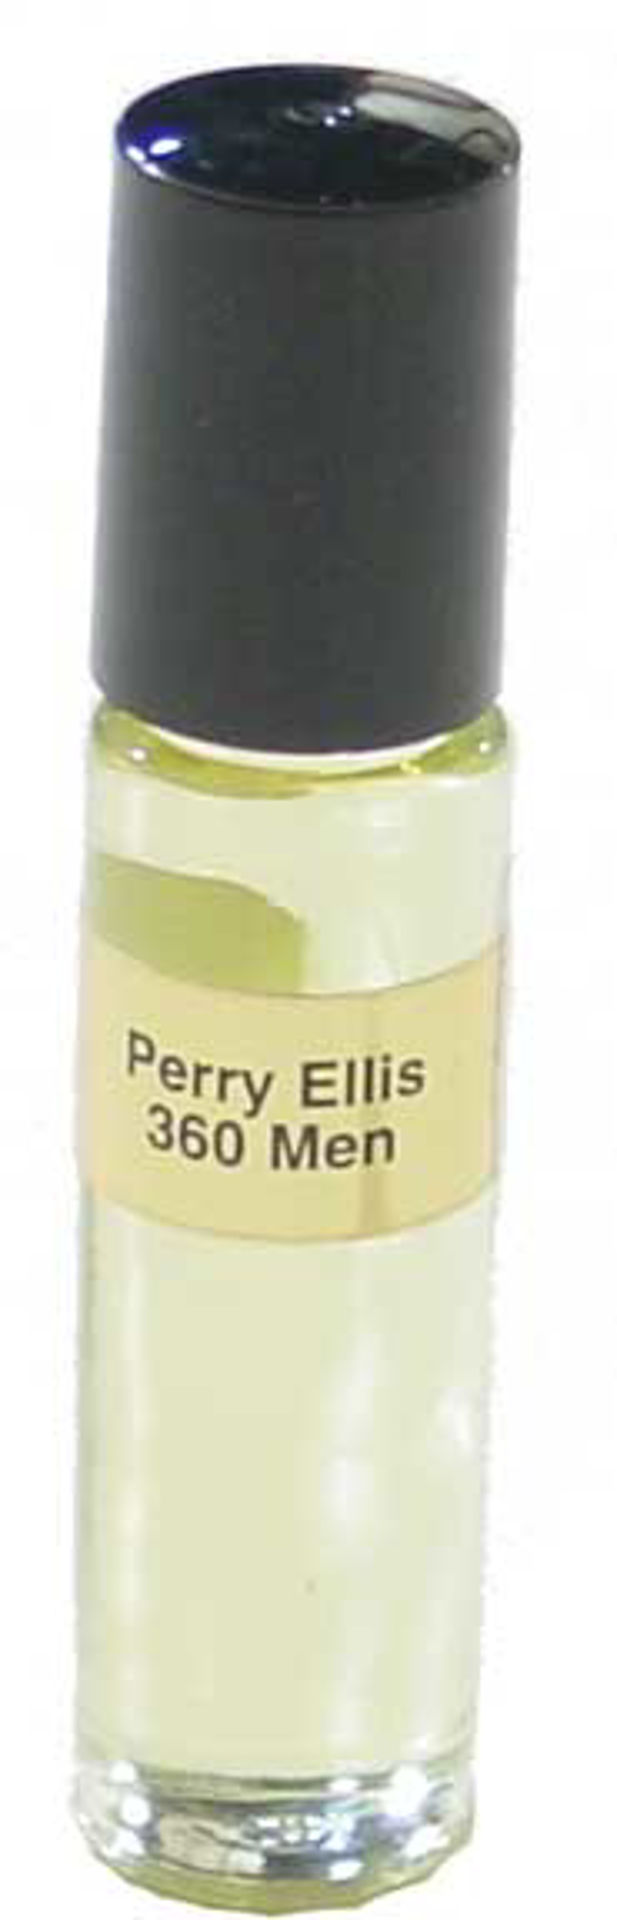 Picture of Perry Ellis 360 (M) Type - 1/3 oz.